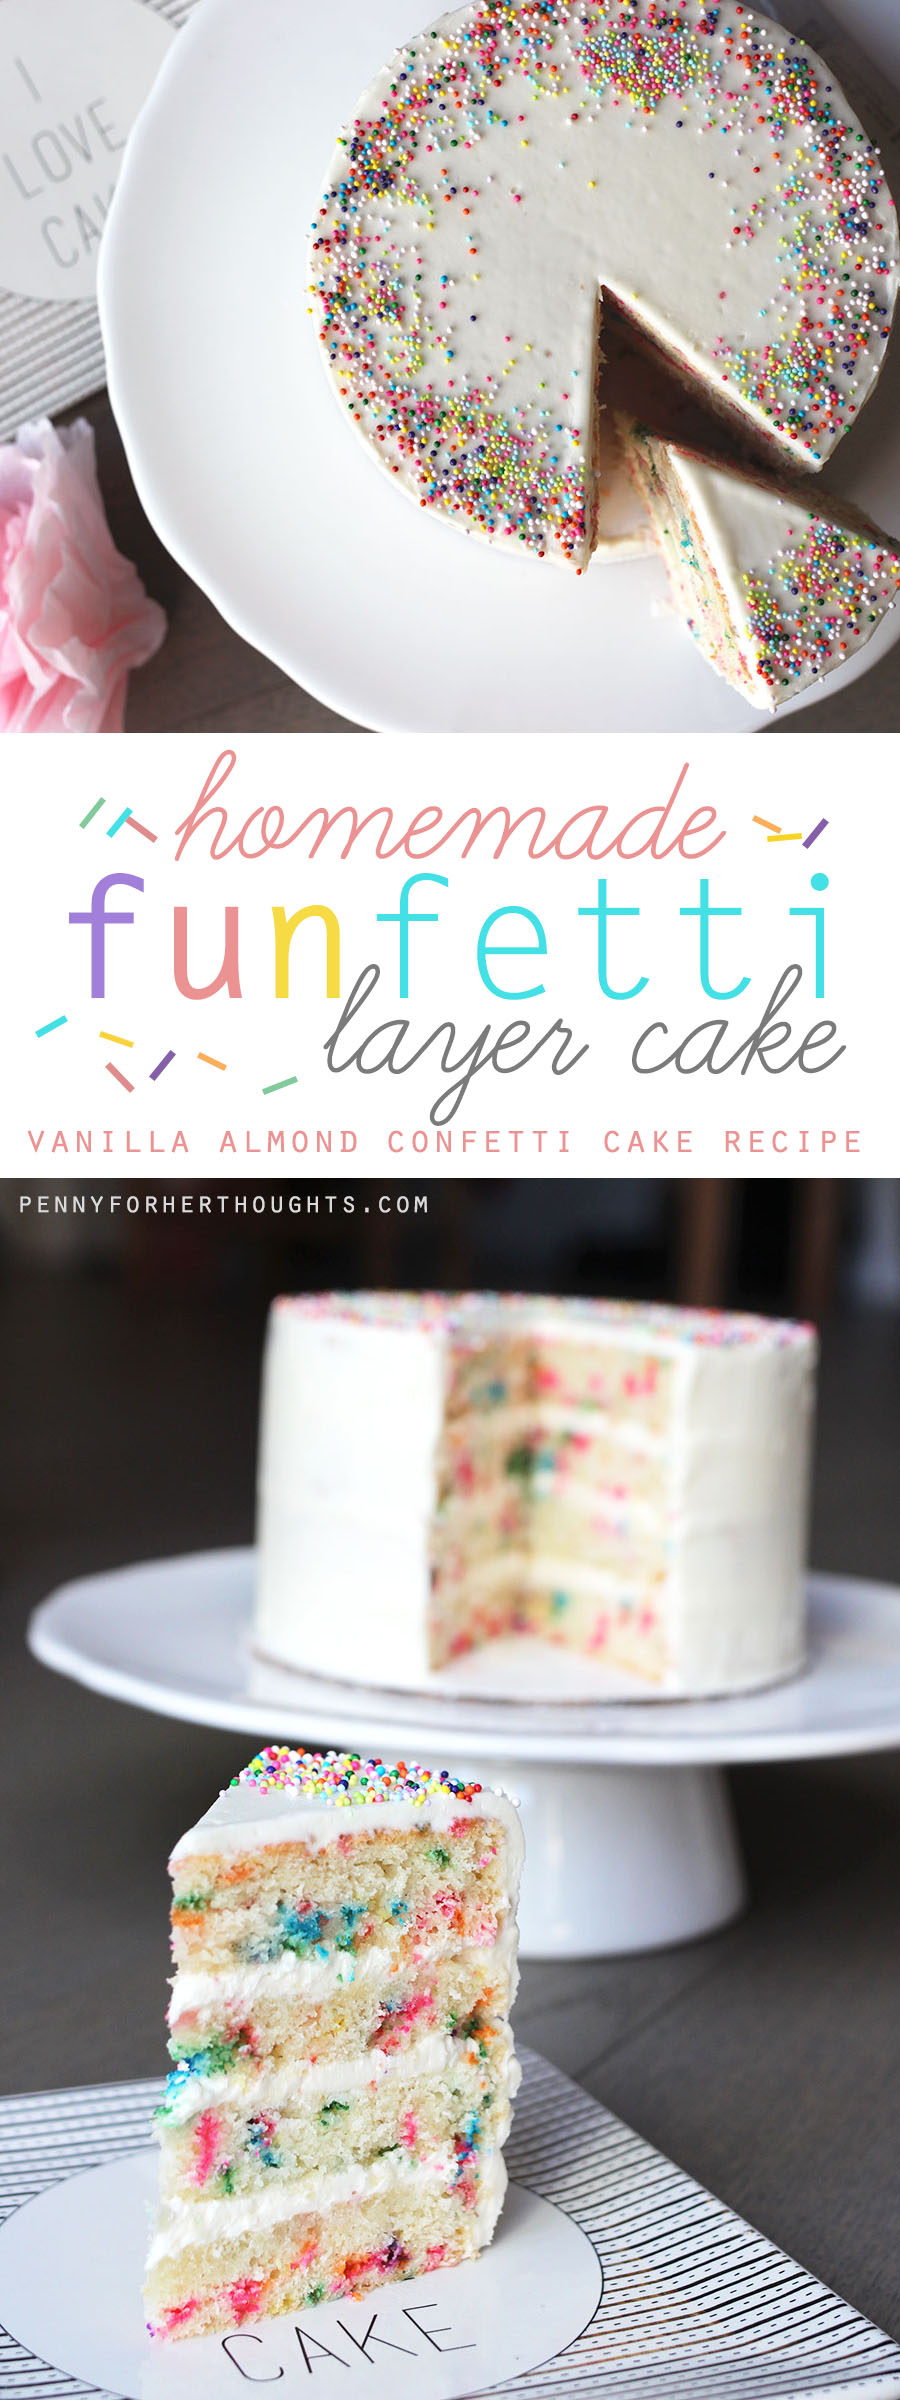 A delicious homemade funfetti cake is a made-from-scratch version of a childhood favorite, bursting with color for the perfect birthday or celebratory cake!